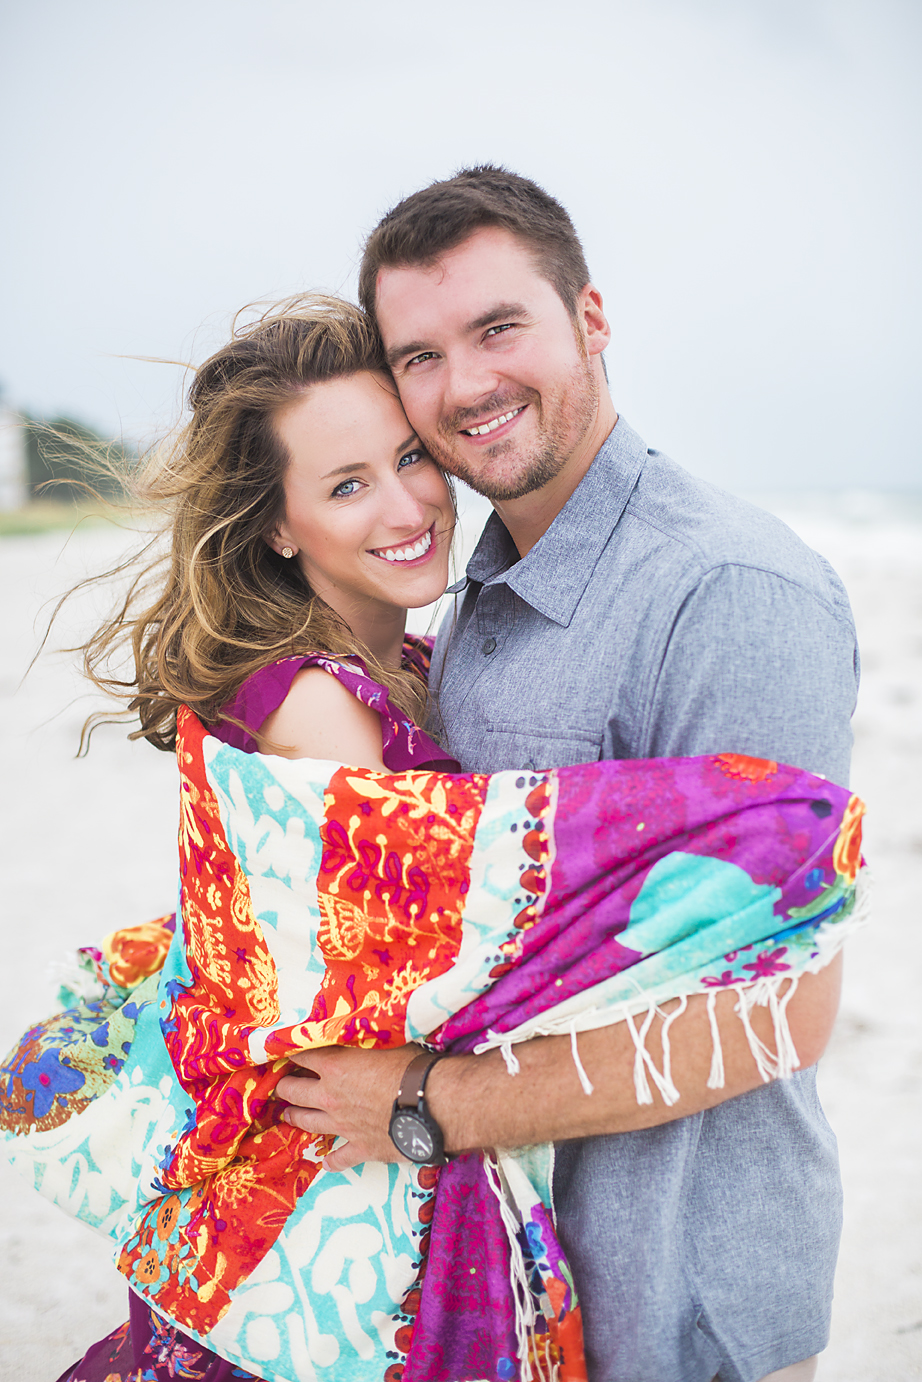 Marybeth + Brendan - Anna Maria Island Engagement Session - Emily & Co. Photography - WEB (98).jpg